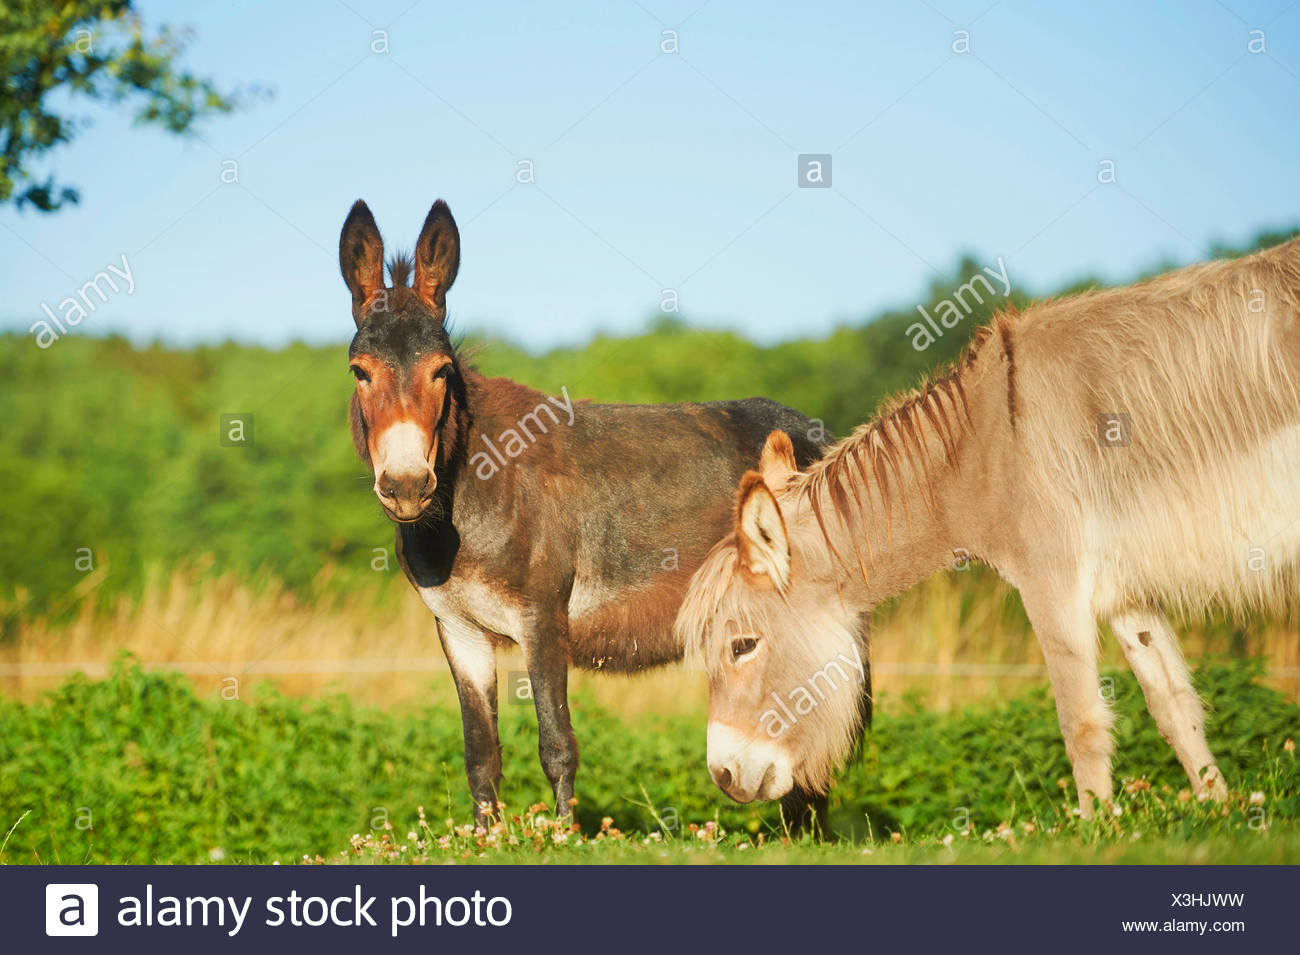 Domestic donkey (Equus asinus asinus), two donkeys standing together in a meadow, Germany - Stock Image